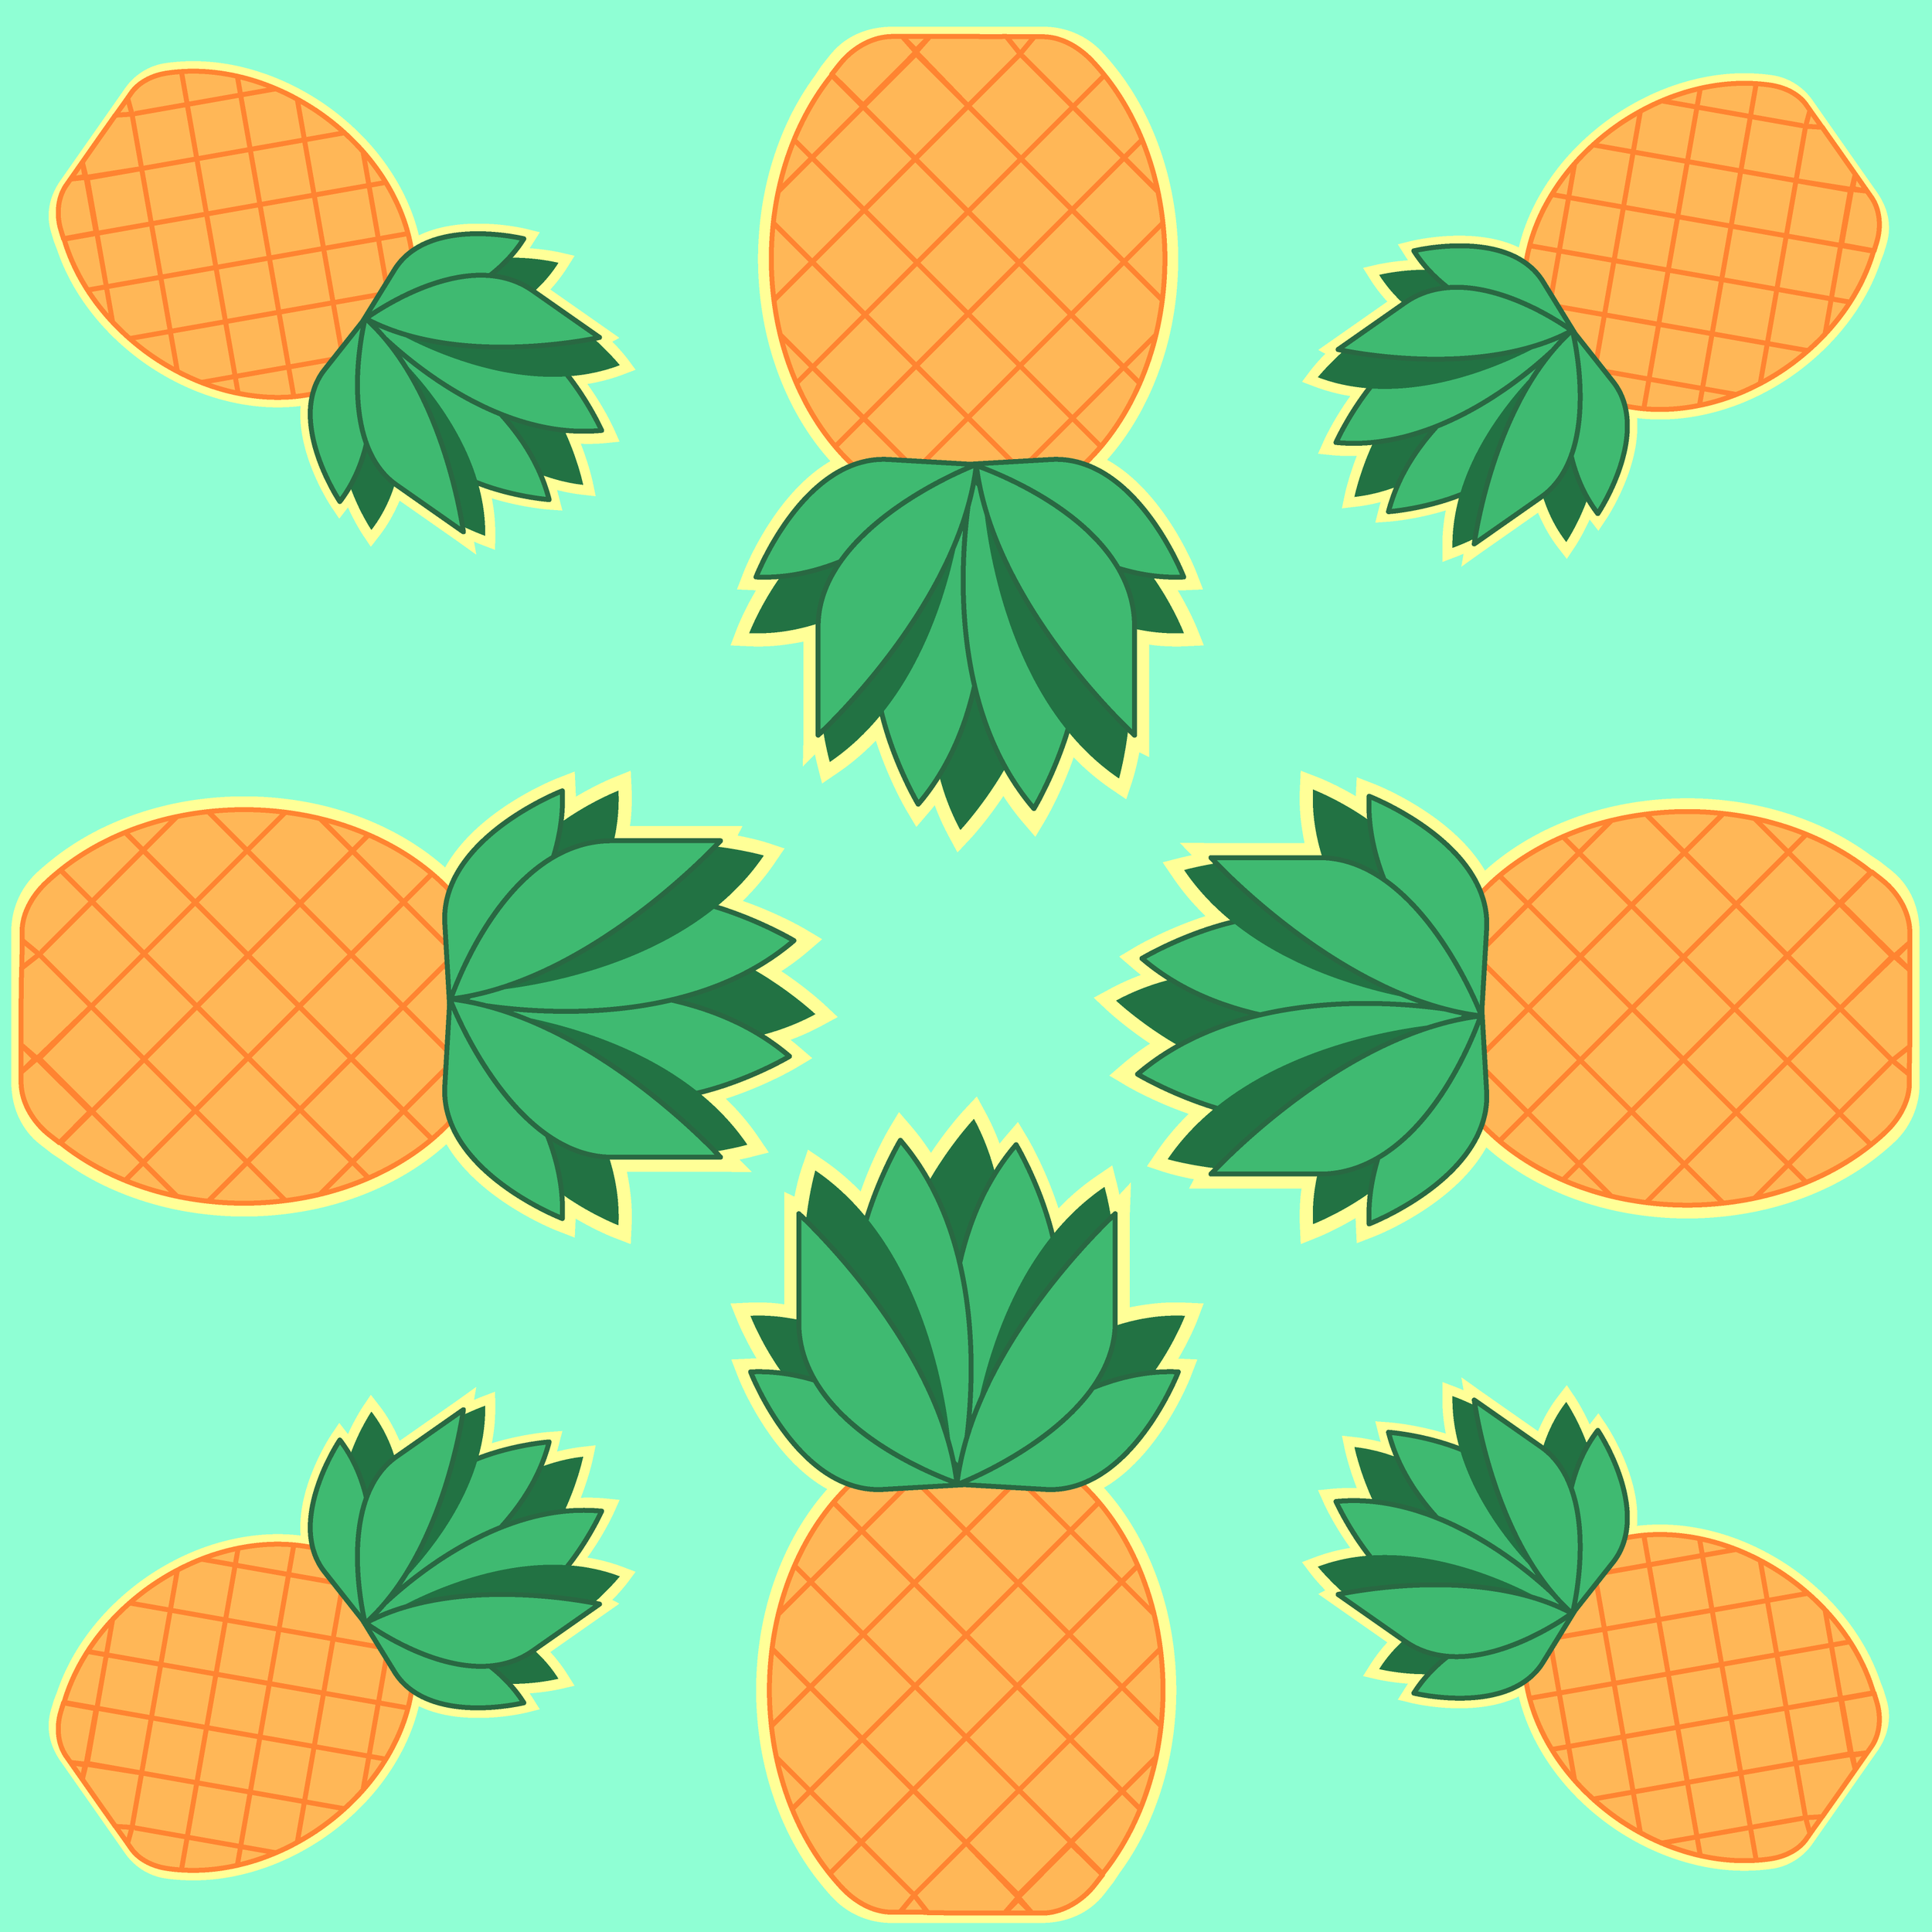 Pineapple_pattern-03.png